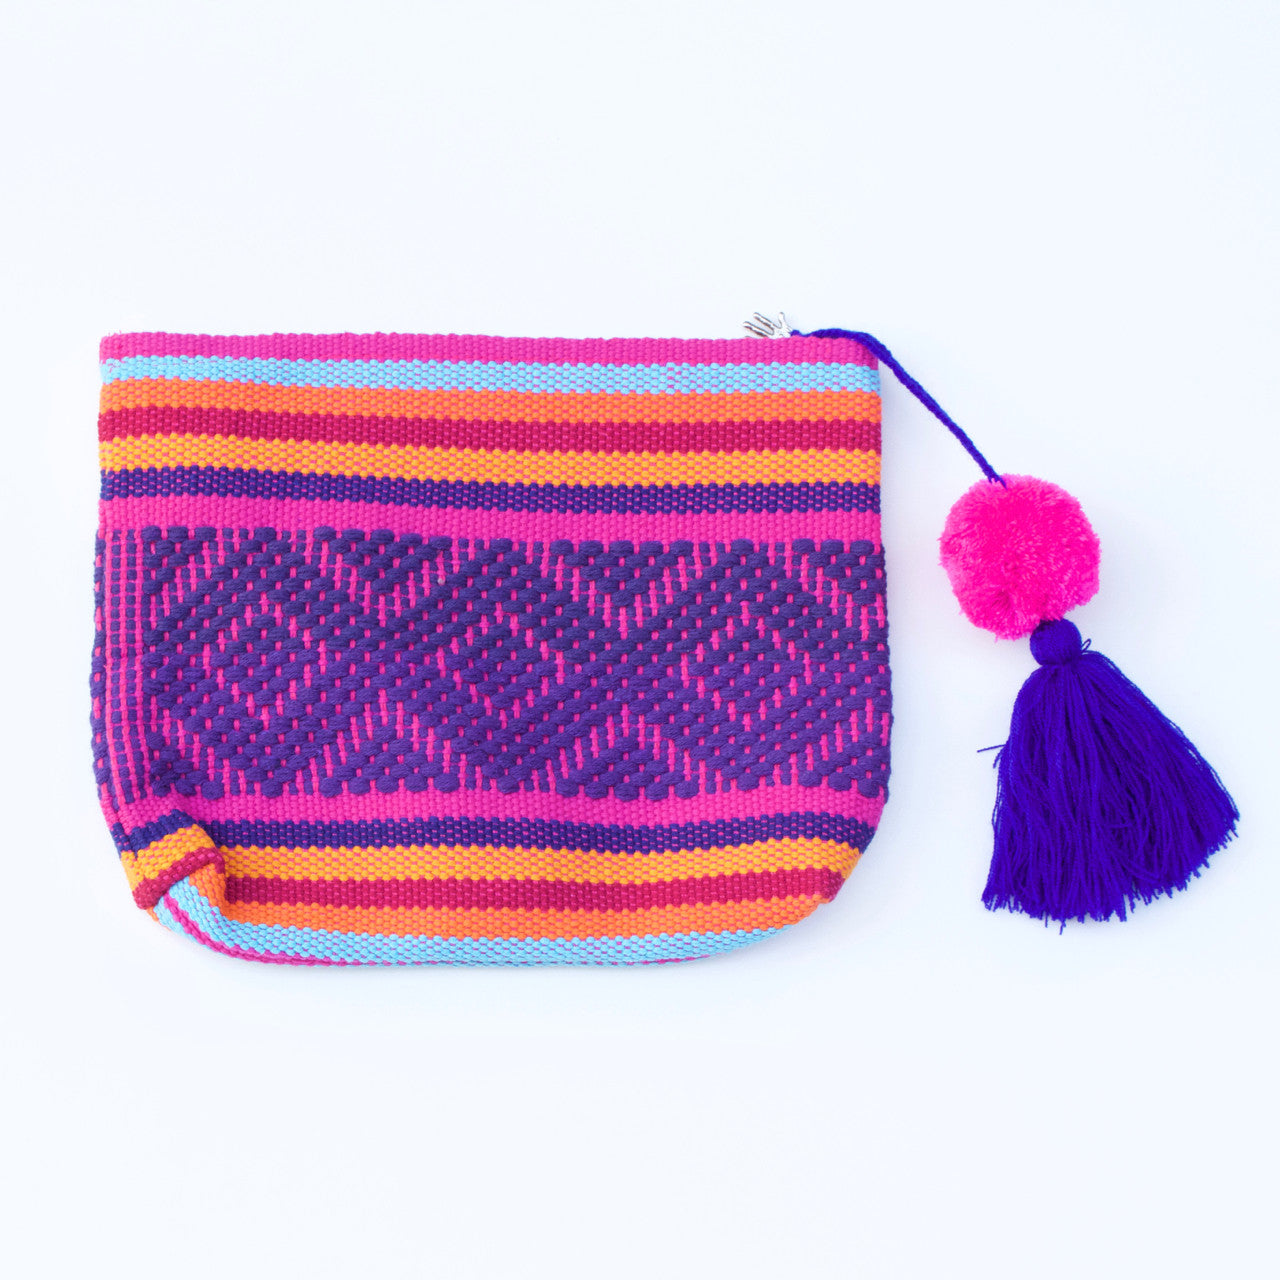 Jalieza Diamond Clutch 27  Clutch Rainbow - Cielo Collective handmade Mexico Guatemala